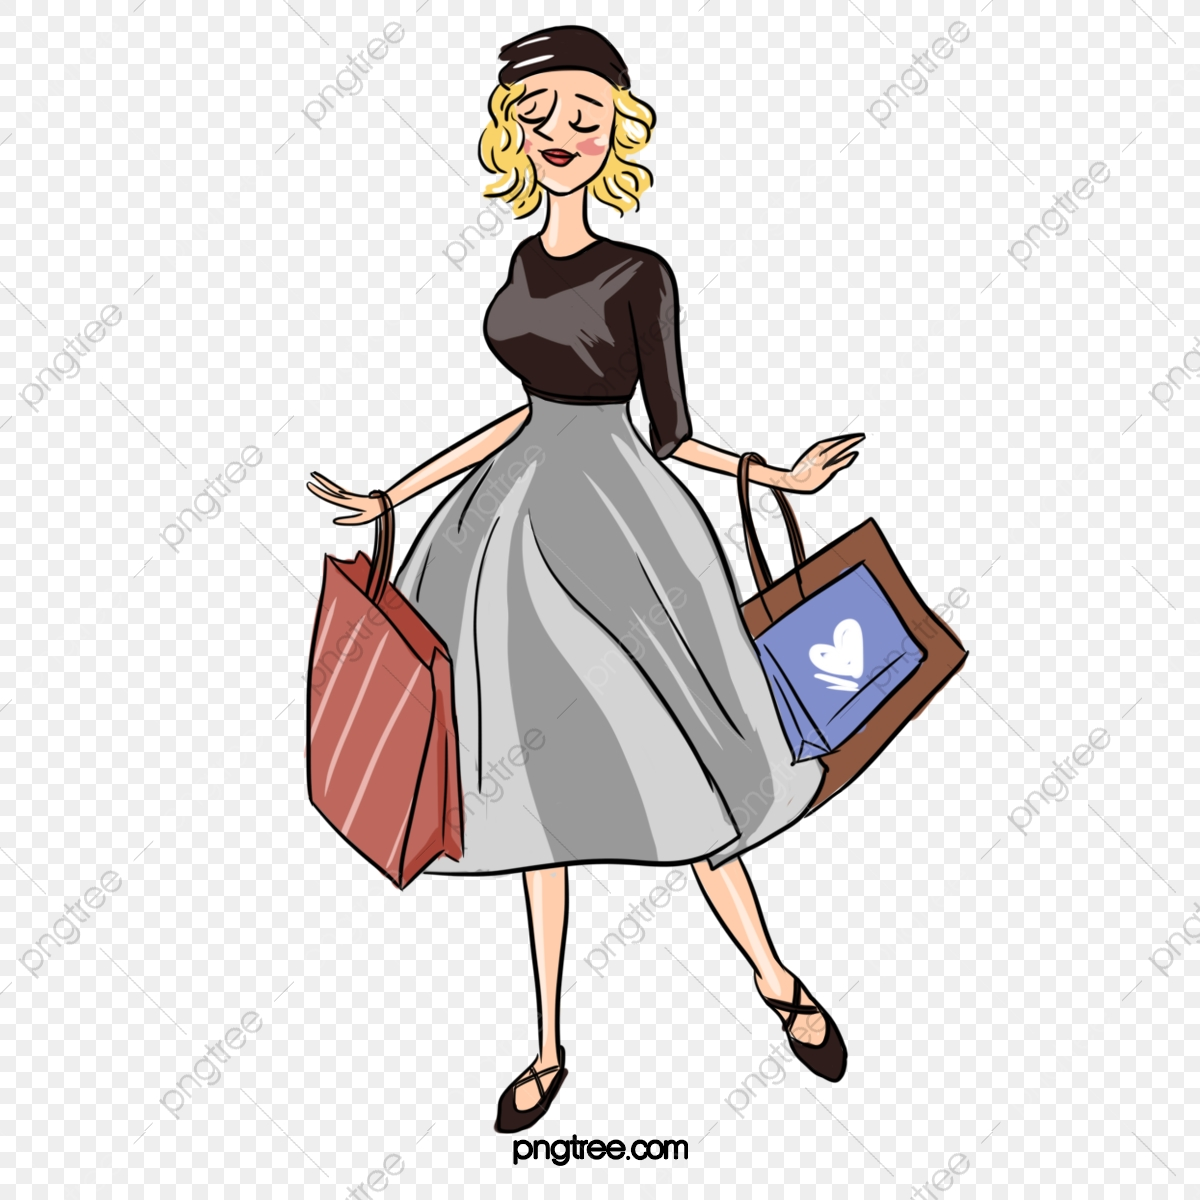 Hand Drawn Line Drawing Style Meets European And American Woman Shopping Elements Shopping Festival Purchase Shopping Png Transparent Clipart Image And Psd File For Free Download